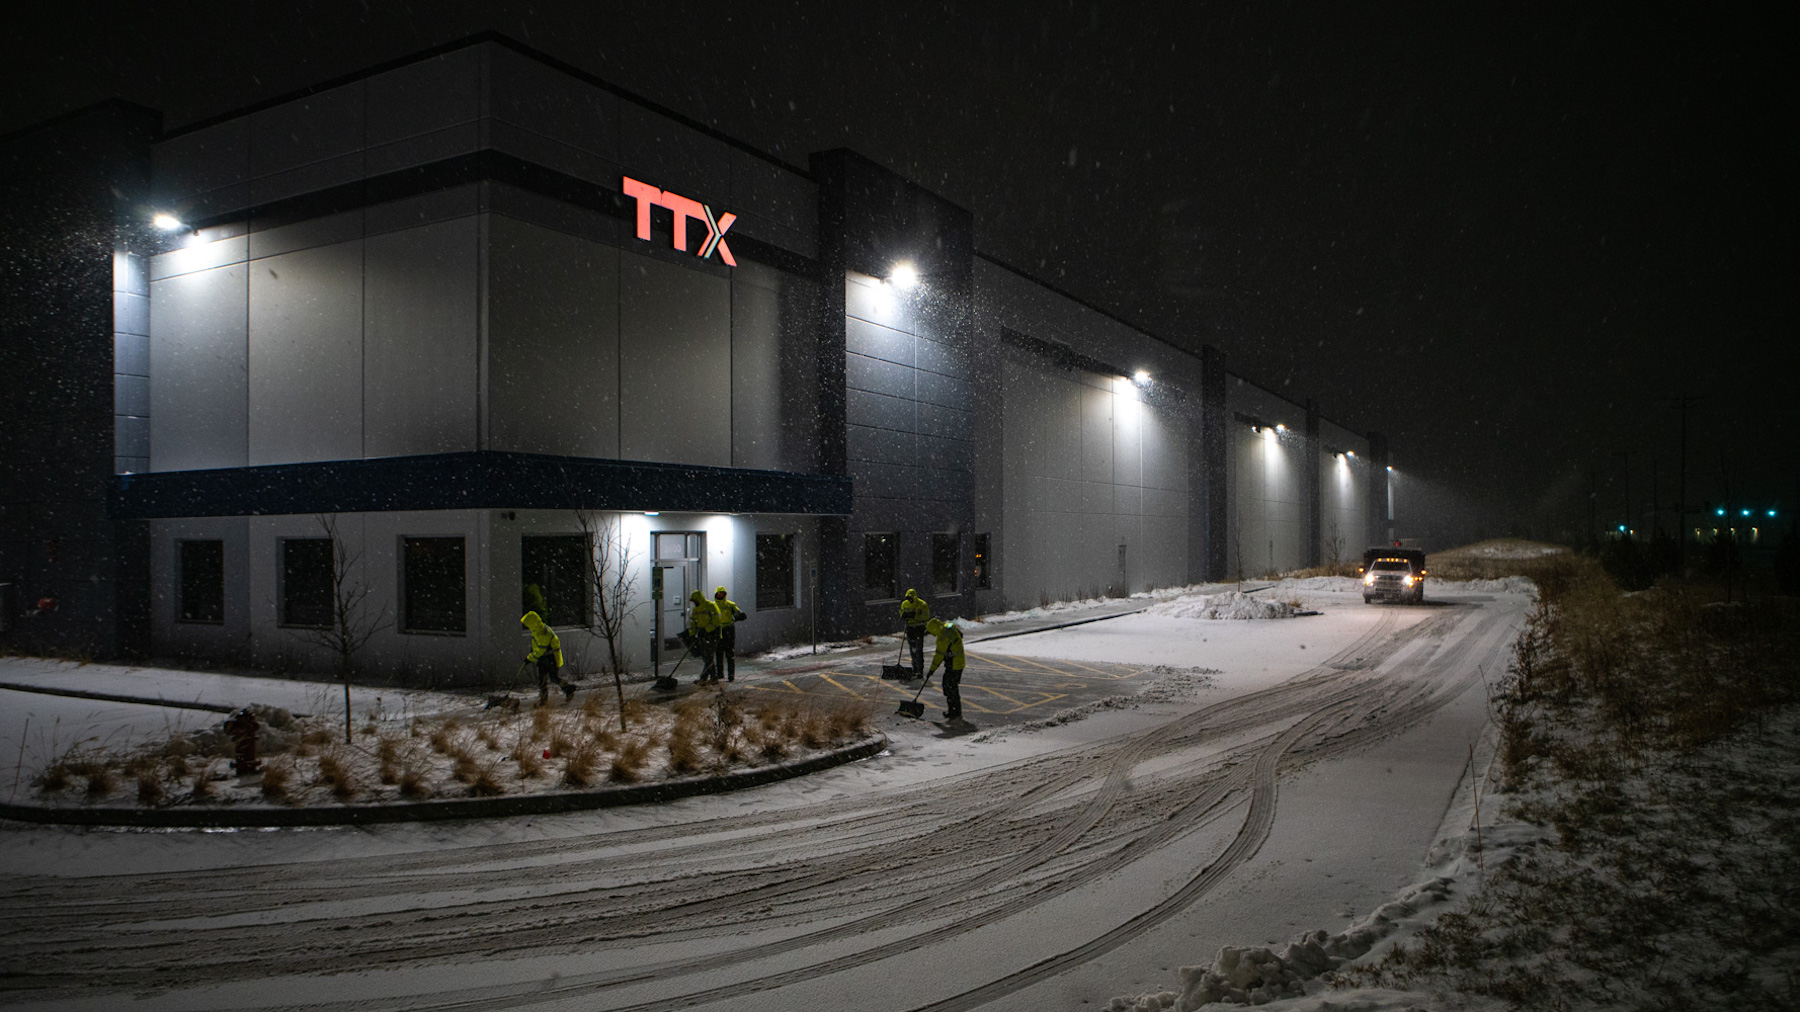 snow removal services at industrial site warehouse